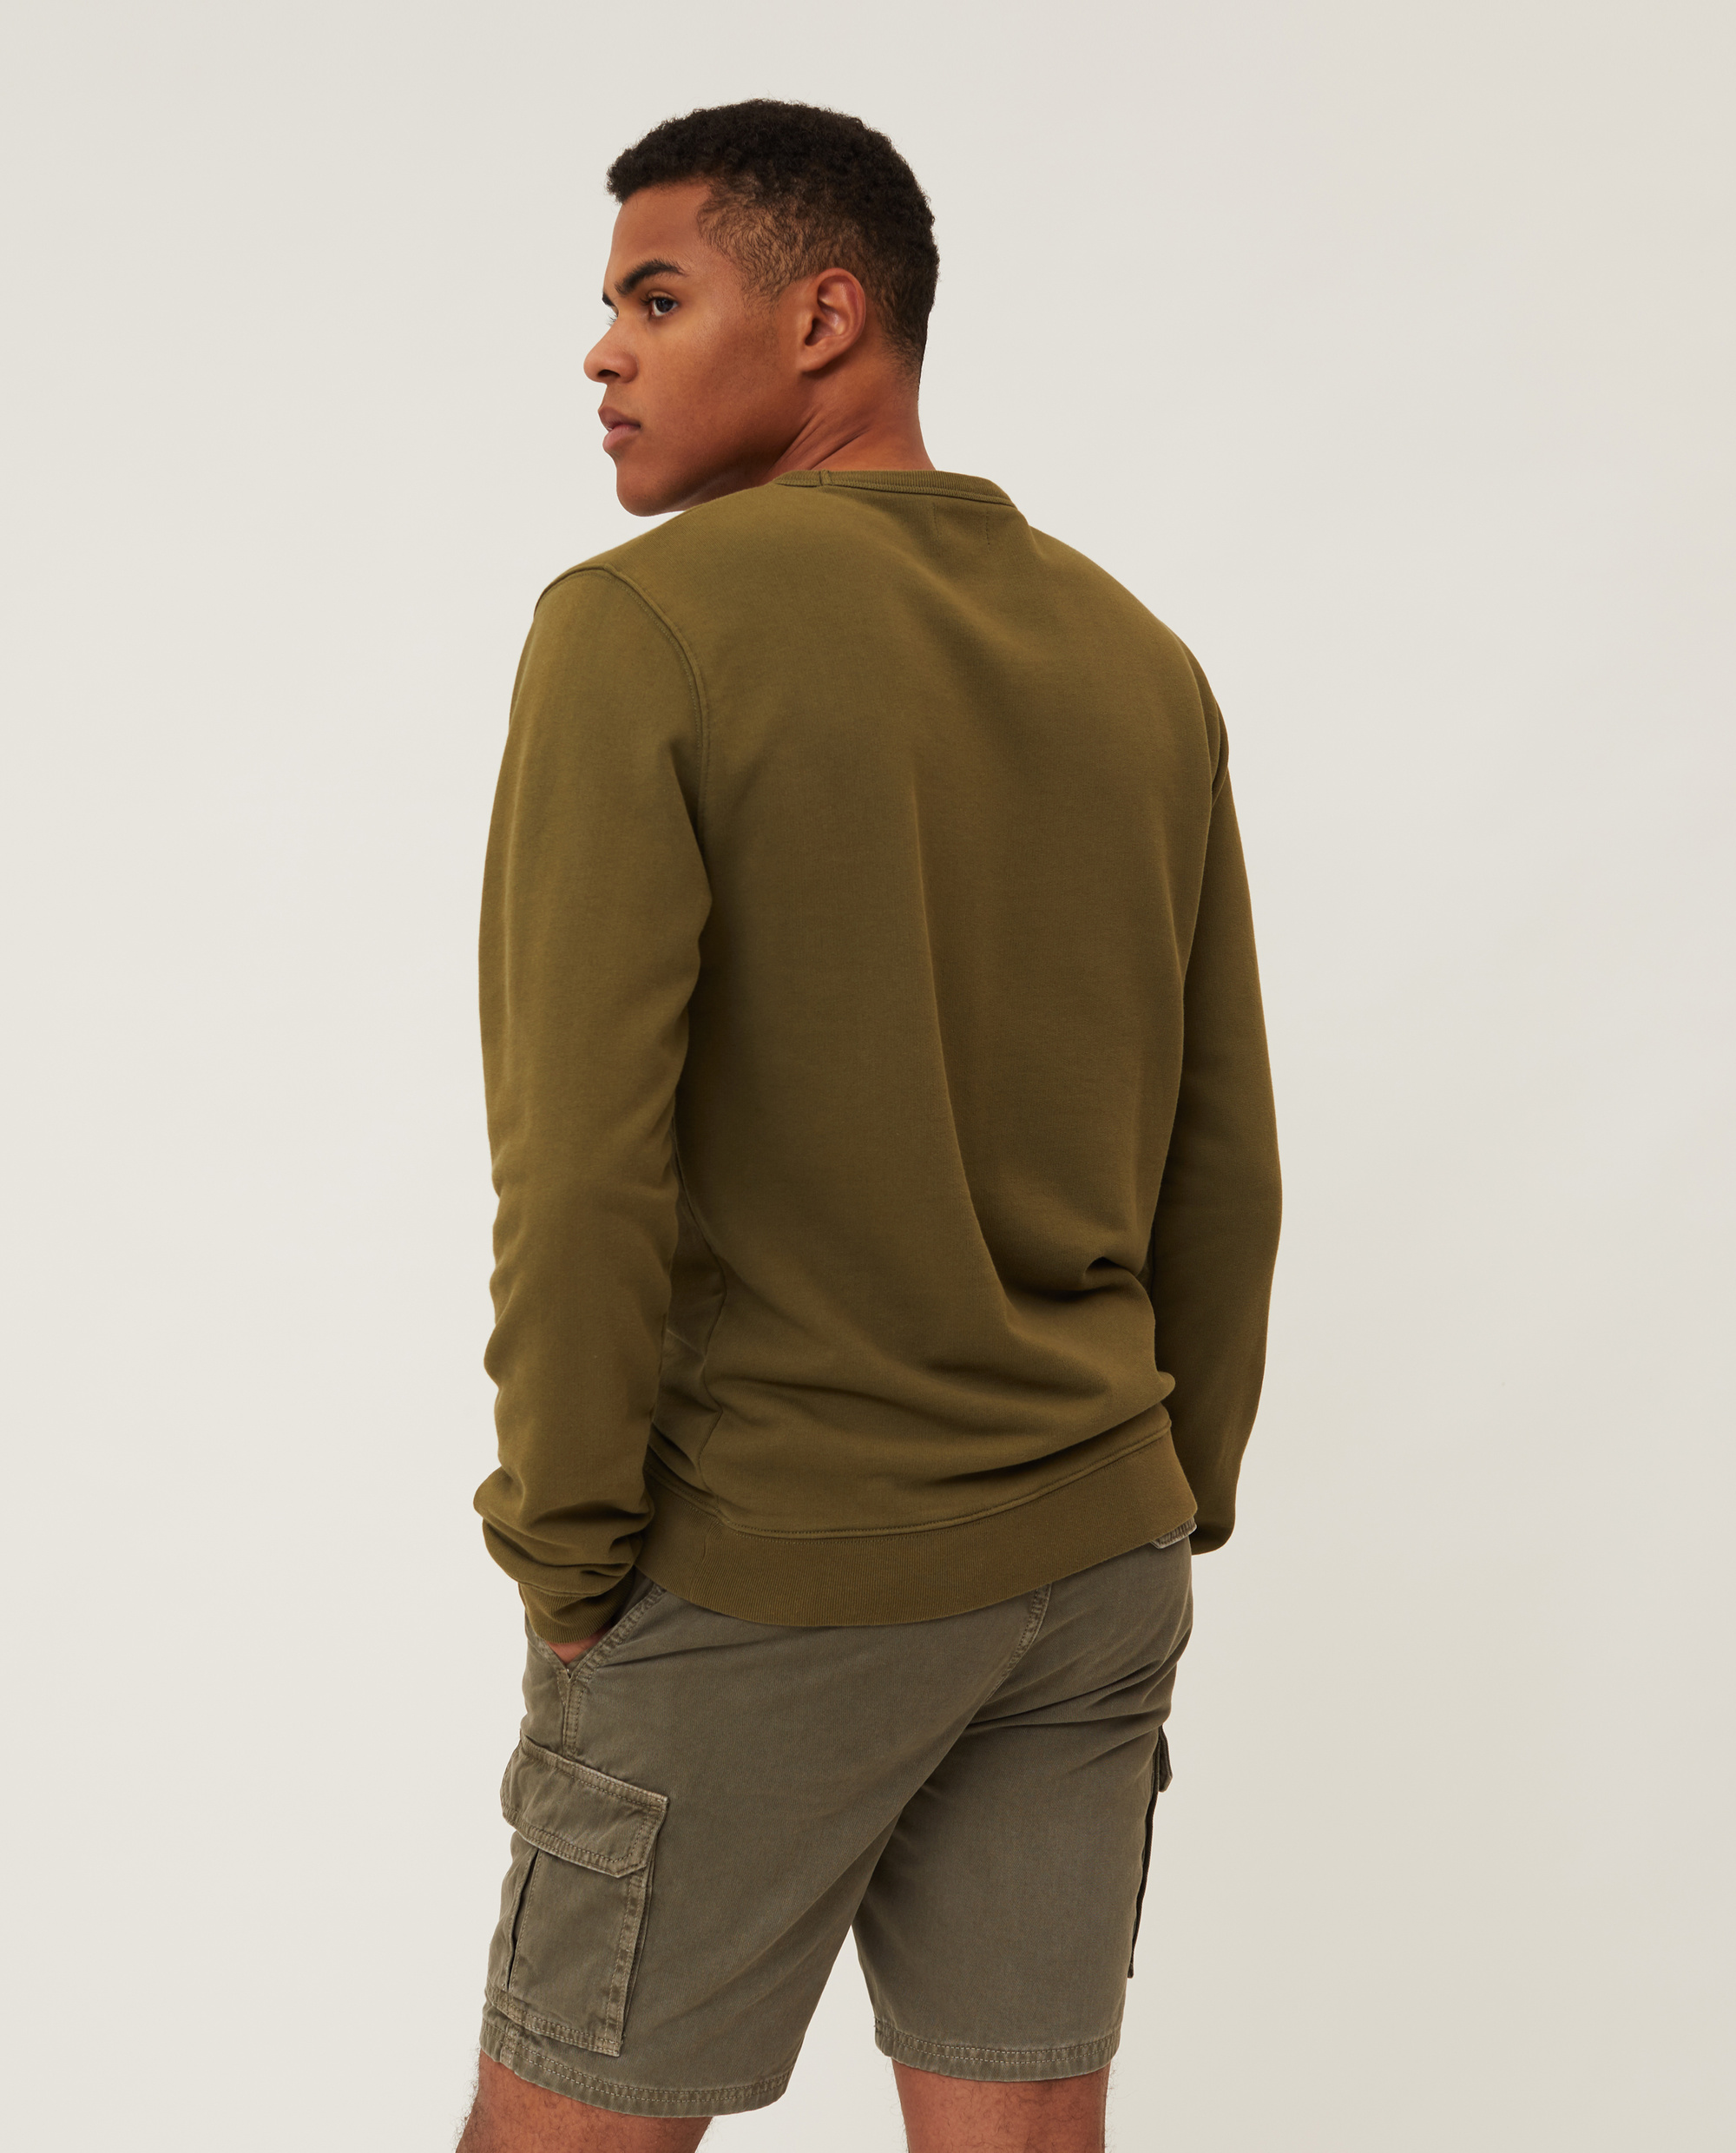 Mateo Sweatshirt, Green